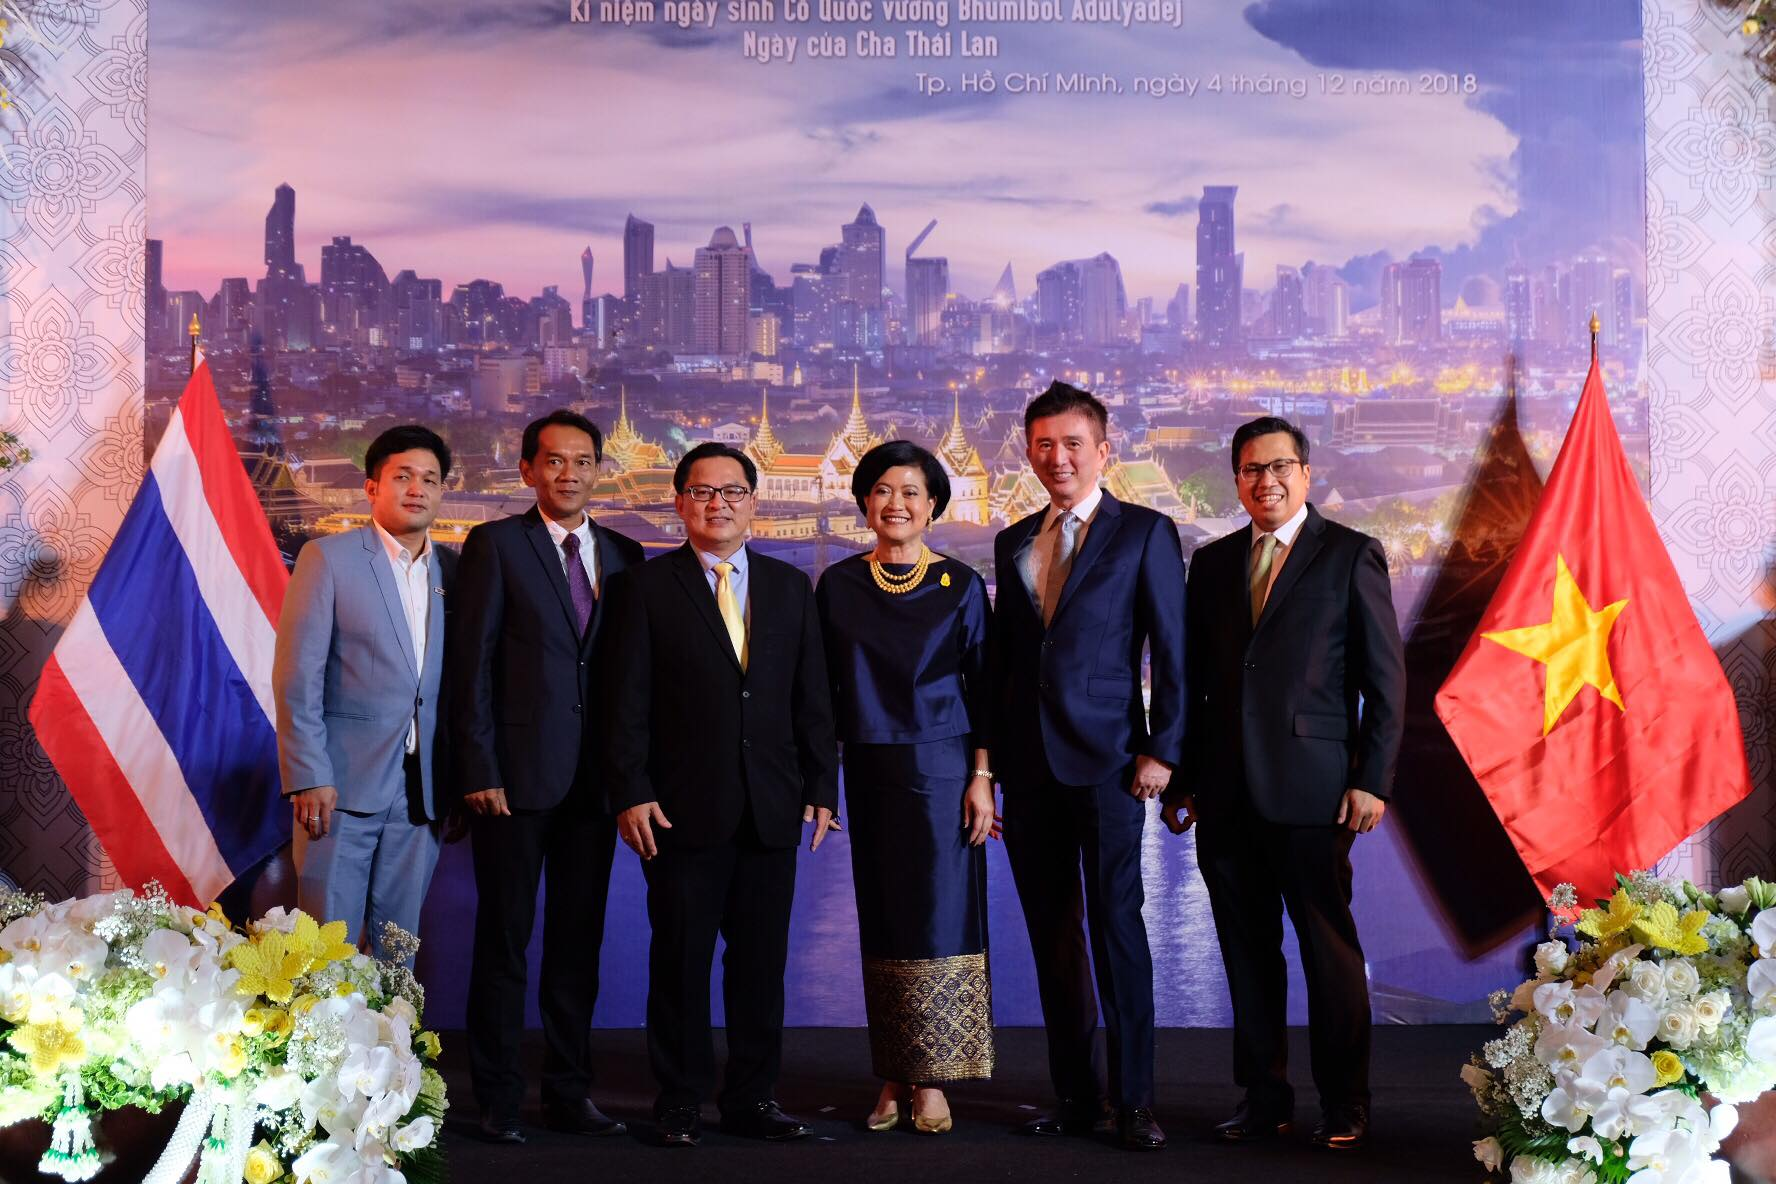 Consul general announces end of term as Thailand's National Day observed in Ho Chi Minh City